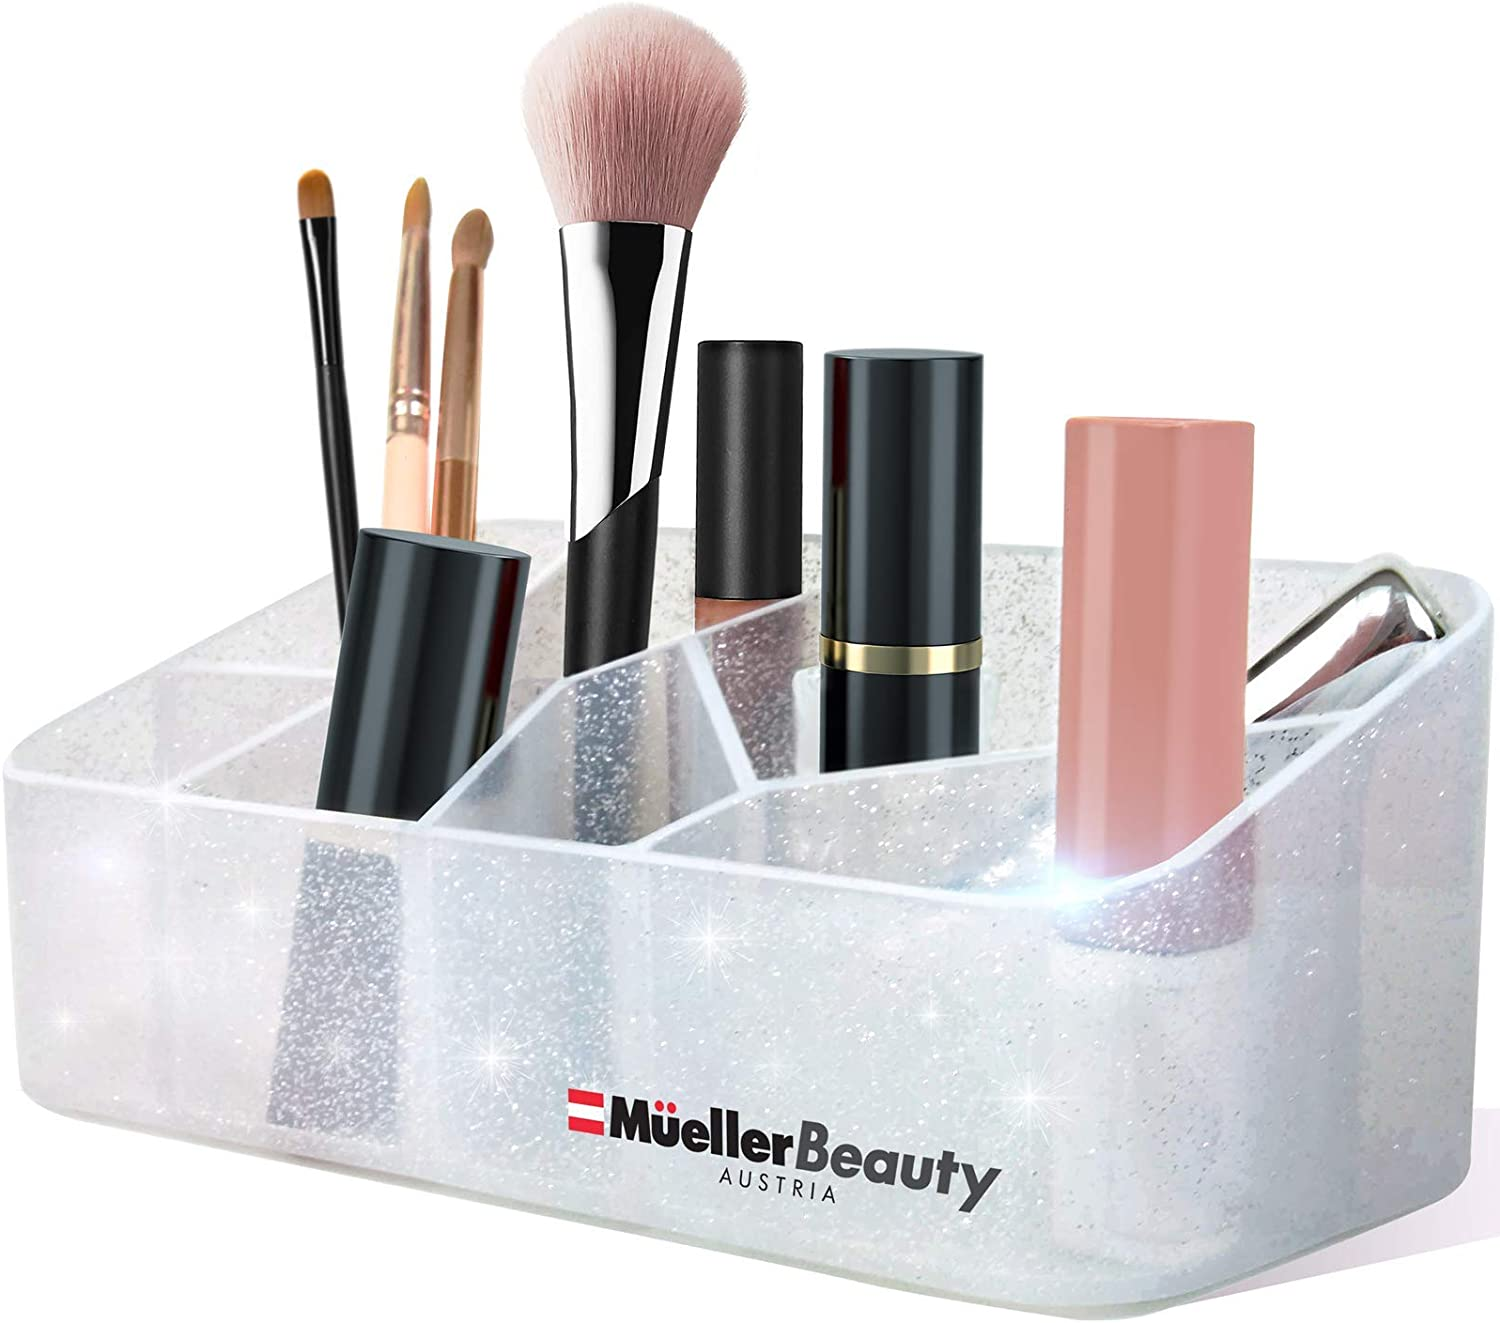 Mueller Beauty Makeup Organizer Countertop, Cosmetic and Jewellery Storage Organizer, Stylish Divided Beauty Display Case, for V